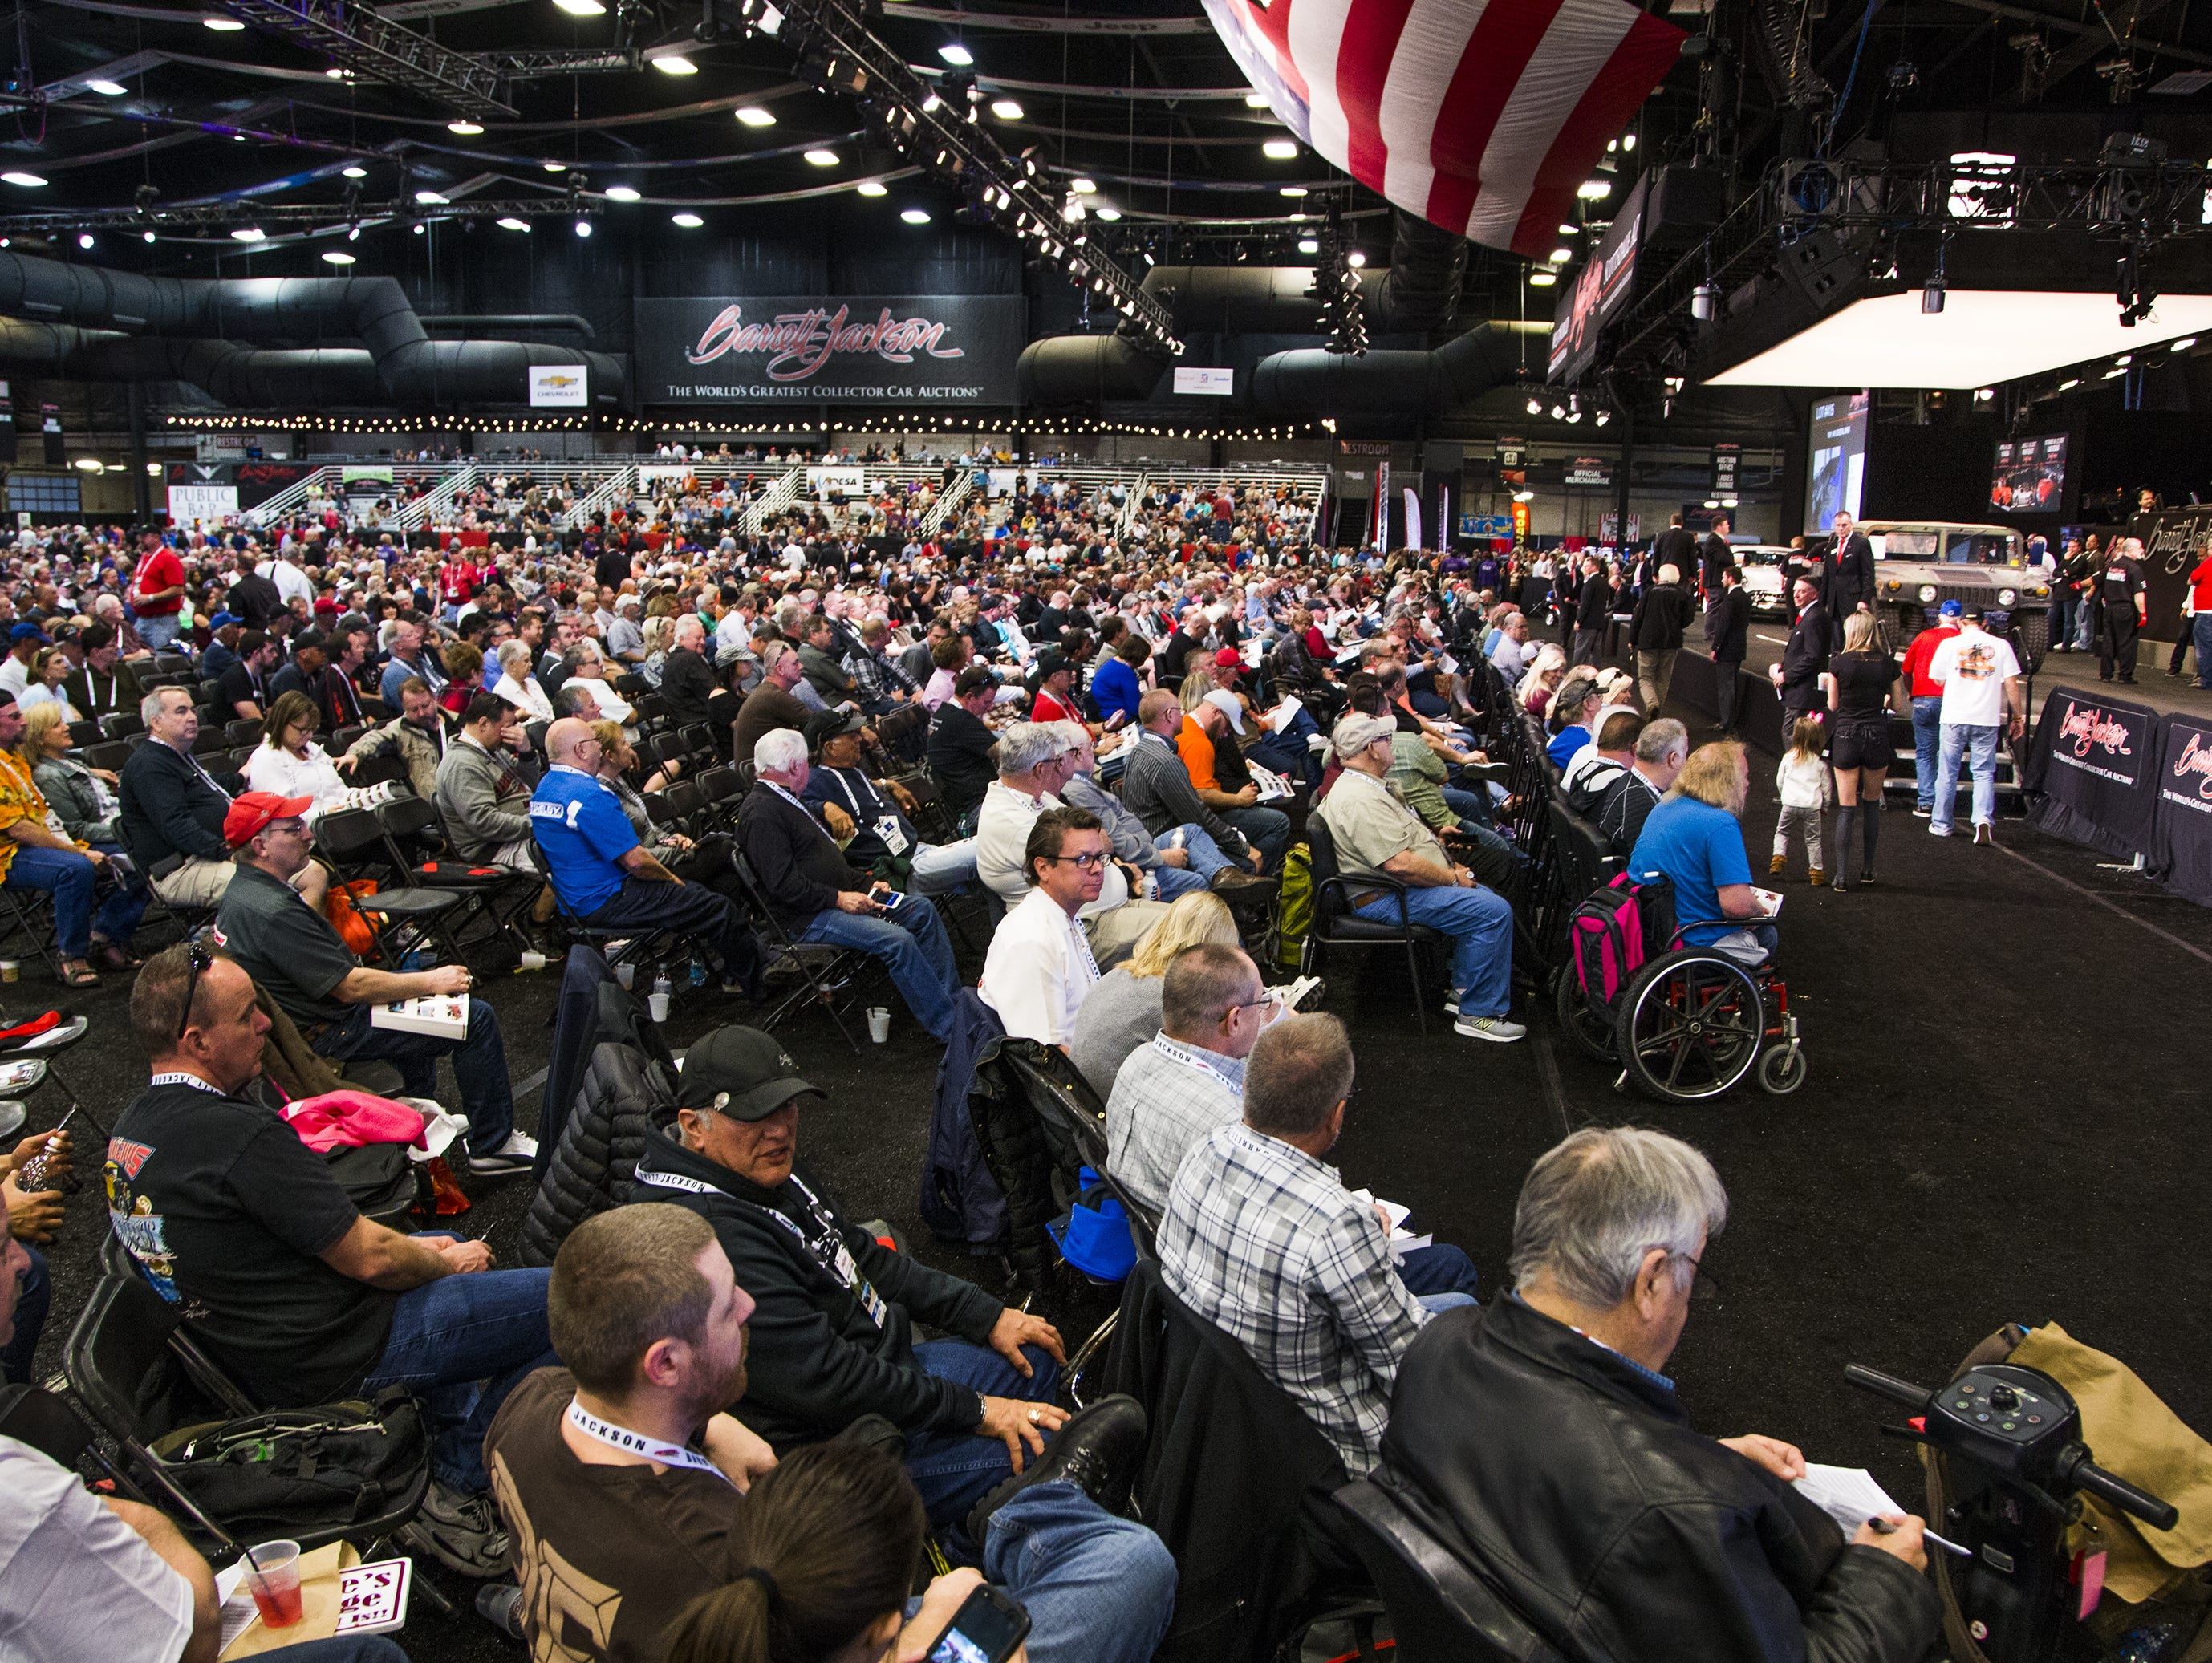 Millennials become a growing force at Barrett-Jackson car auction.